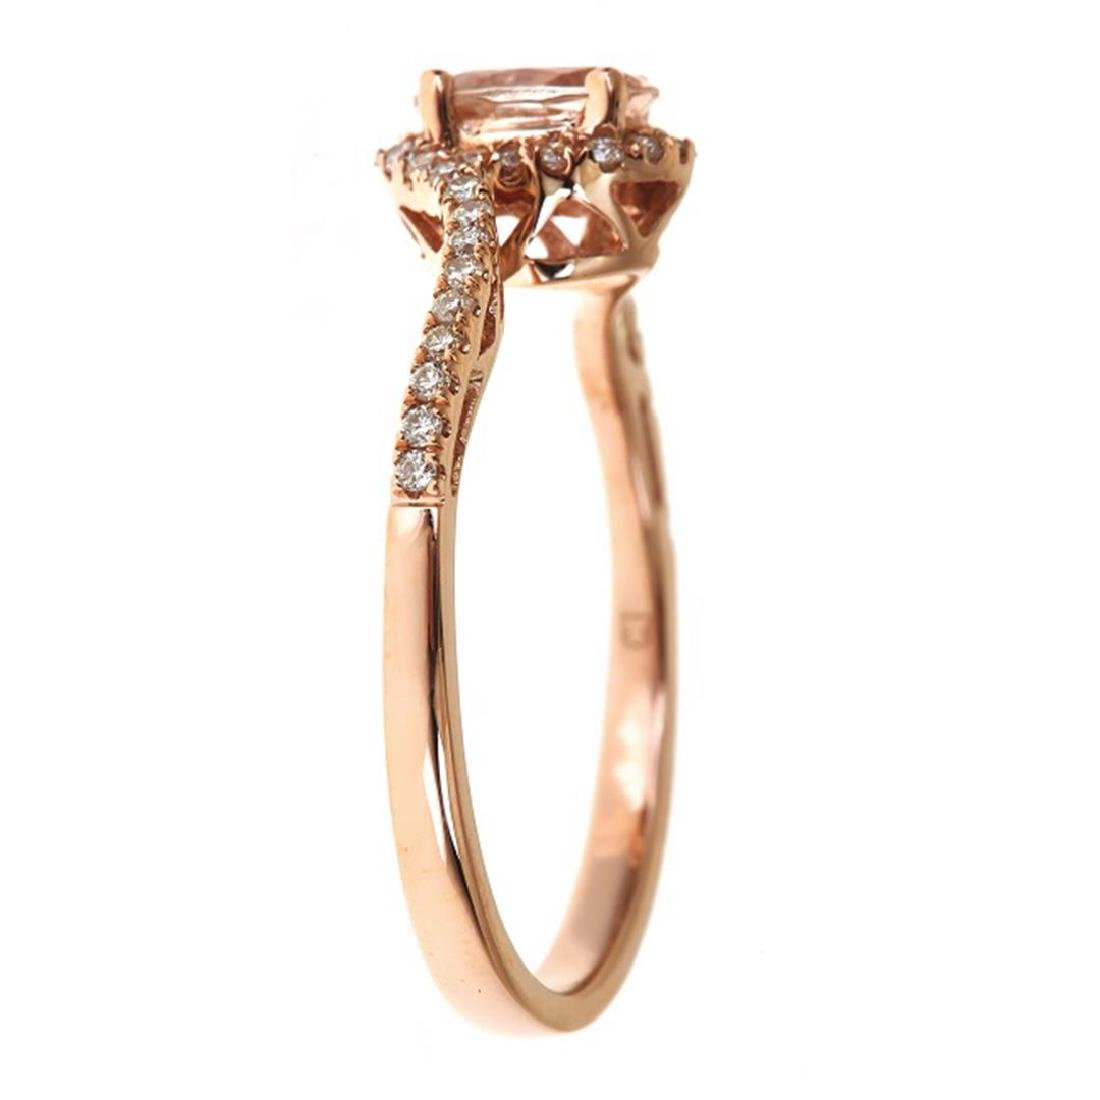 0.48 ctw Morganite and Diamond Ring - 14KT Rose Gold - 2